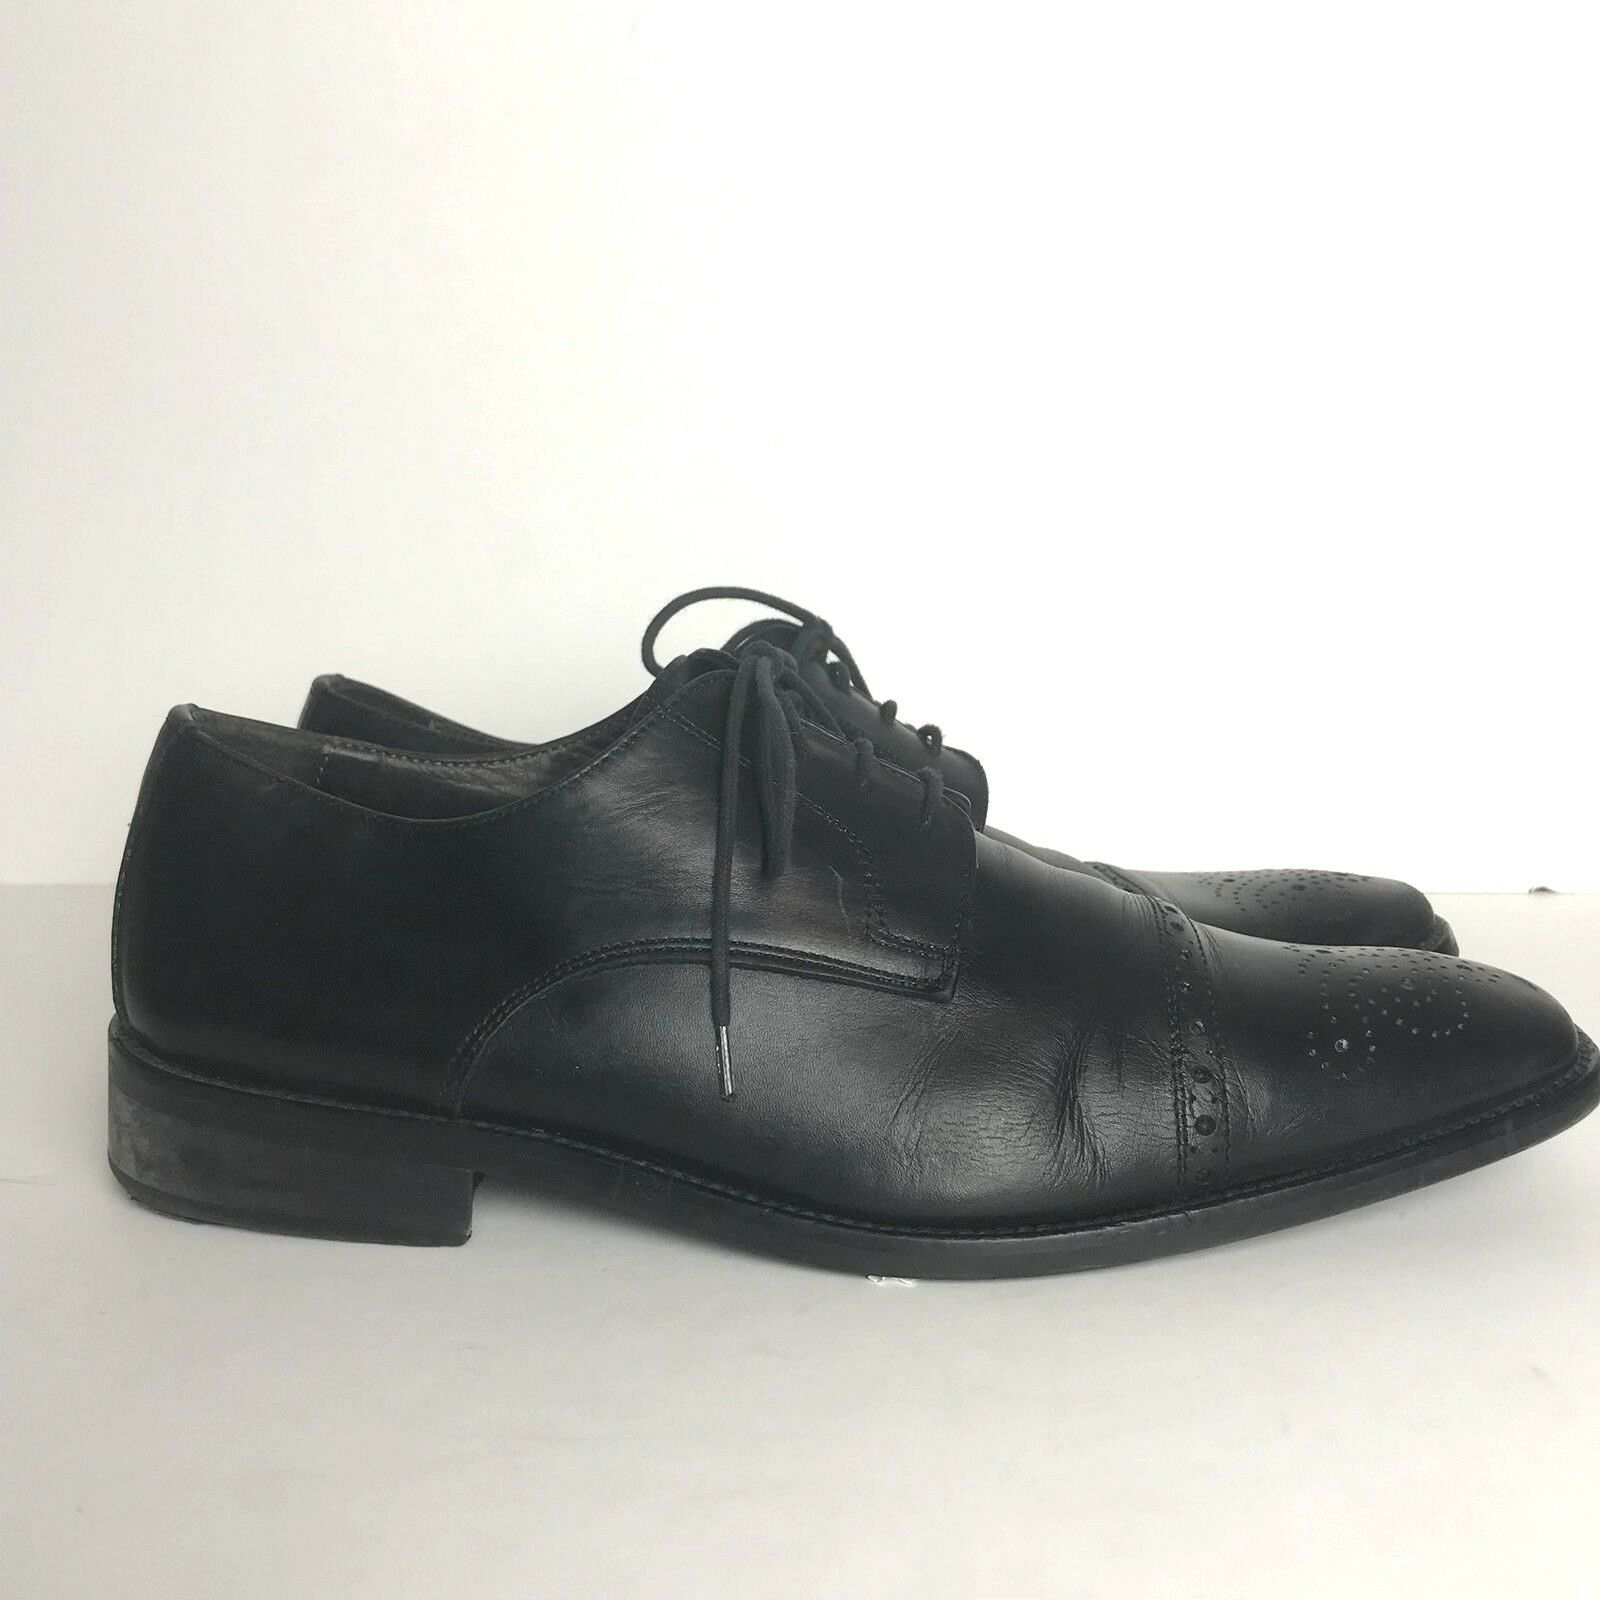 ADAM DERRICK To Boot New York Black Leather Oxford Brogue Cap Toe Dress shoes 10